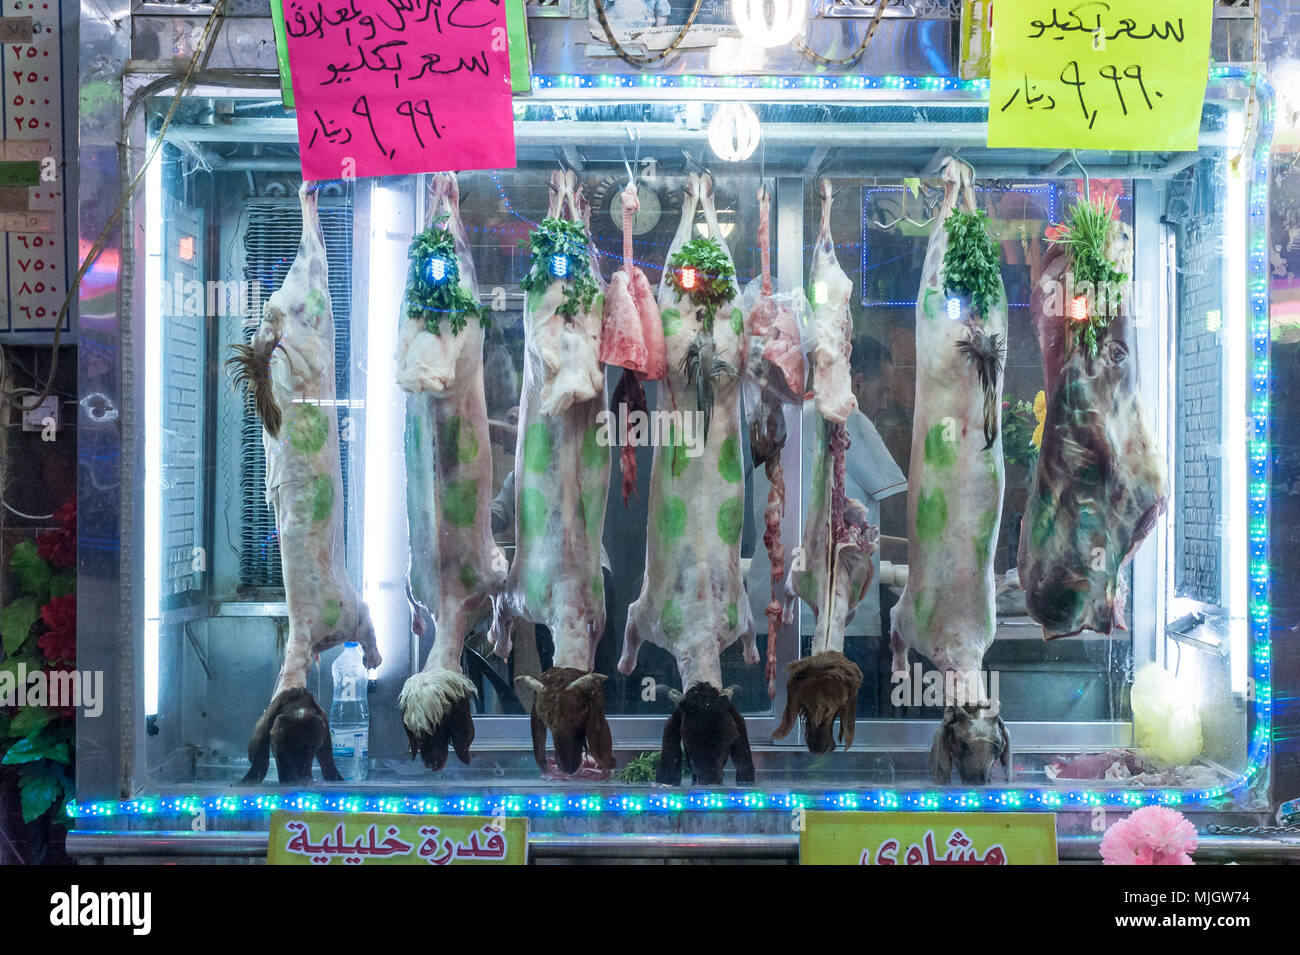 Goats meat at the butcher in Aqaba,al-ʻAqabah, 'the Obstacle' a Jordanian coastal city situated at the northeastern tip of the Red Sea. - Stock Image